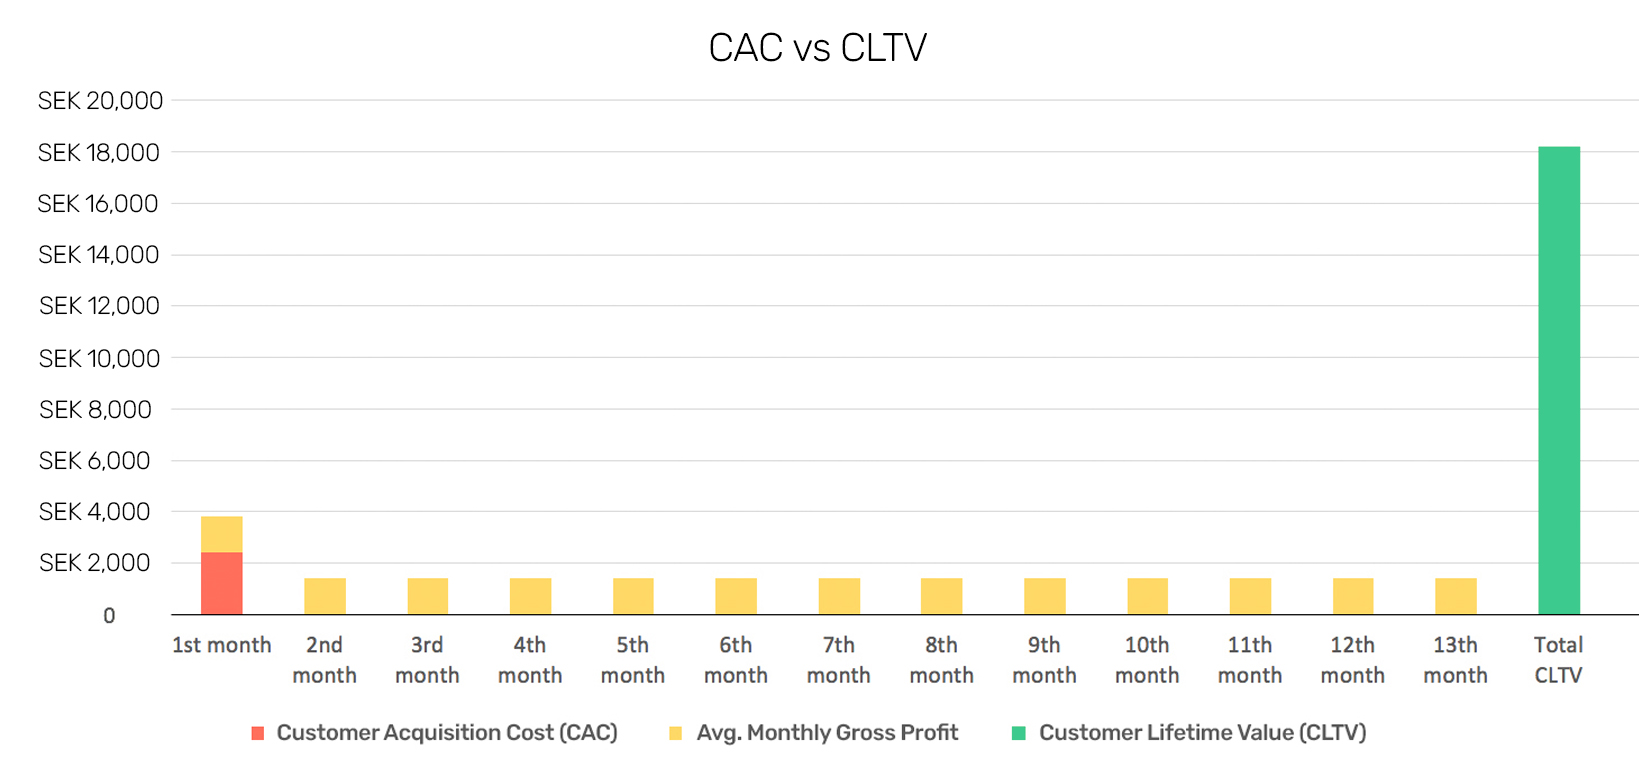 CAC vc CLTV